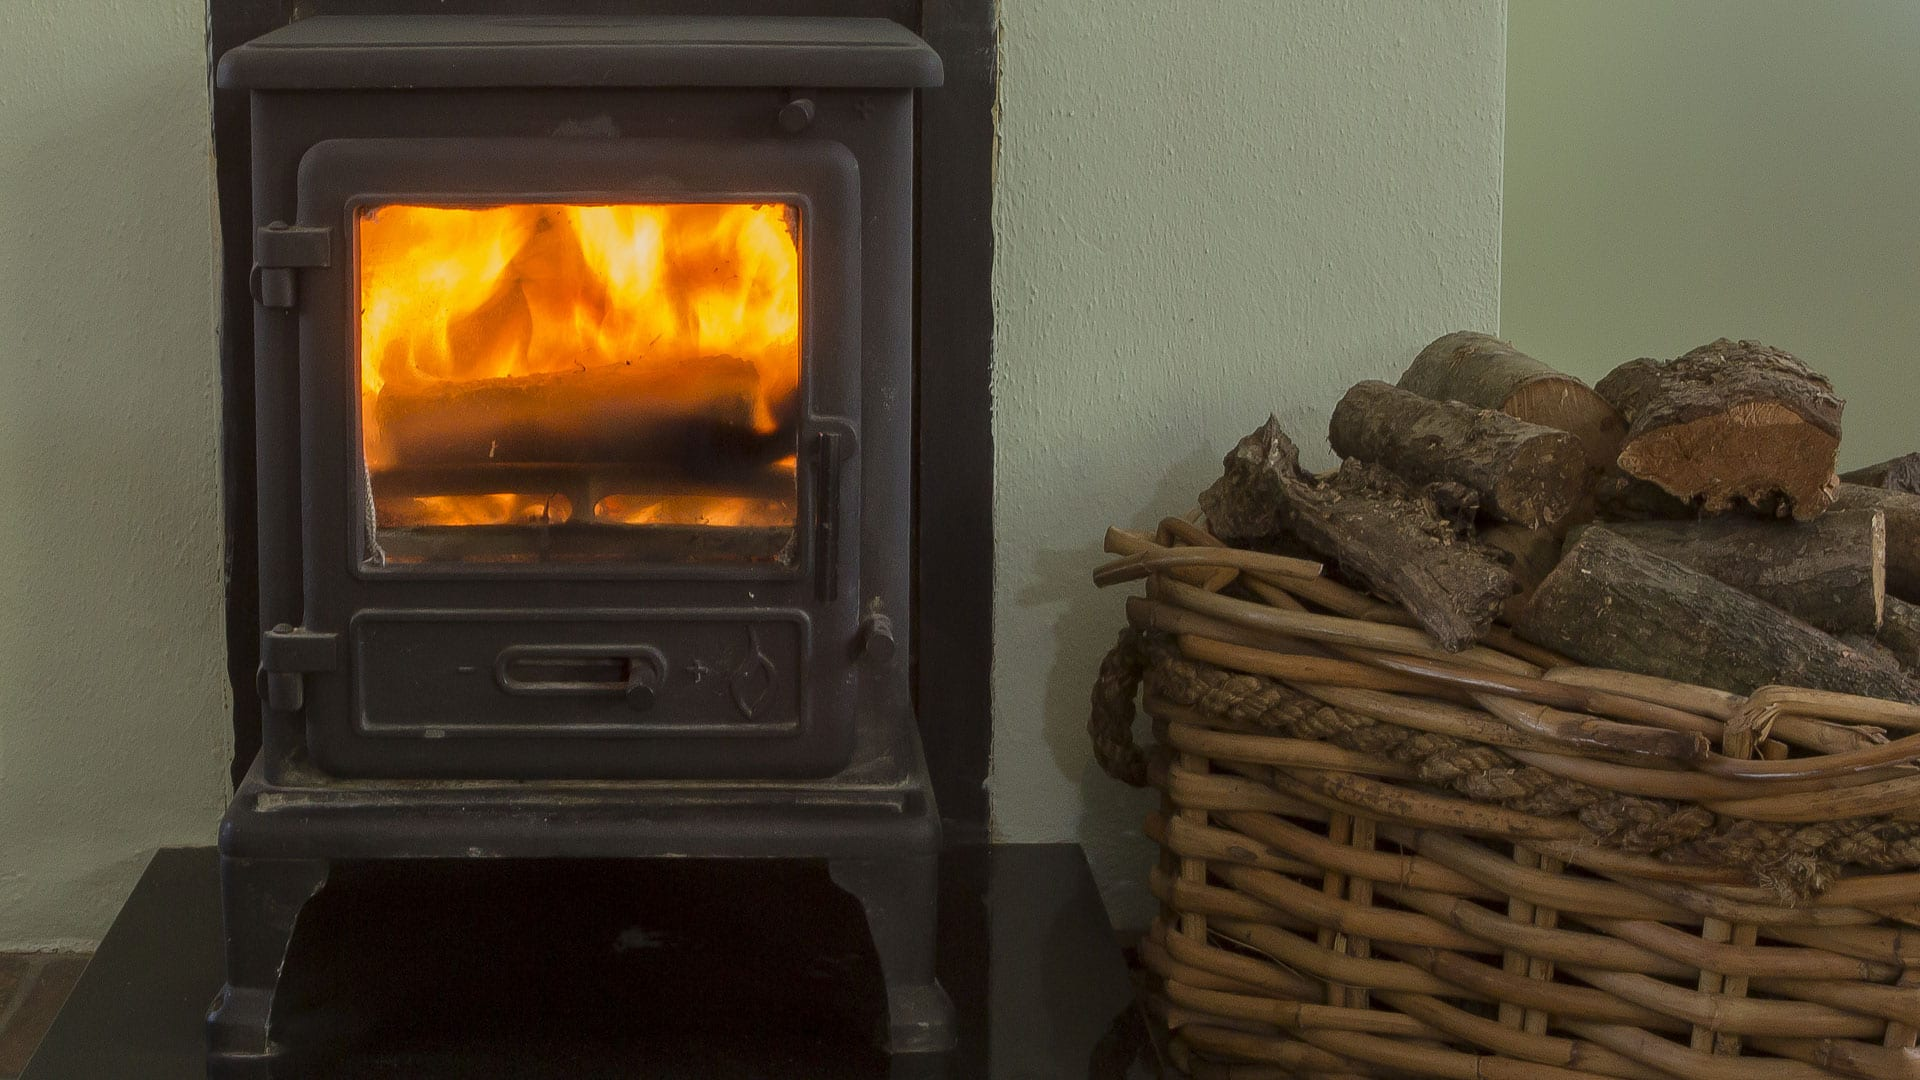 Living-Room-Fireplace-Kindling-Logs-Wood-Wicker-Basket-Cottage-House-Holiday-Homes-Ireland-Meath-Dunshaughlin-Self-Catering